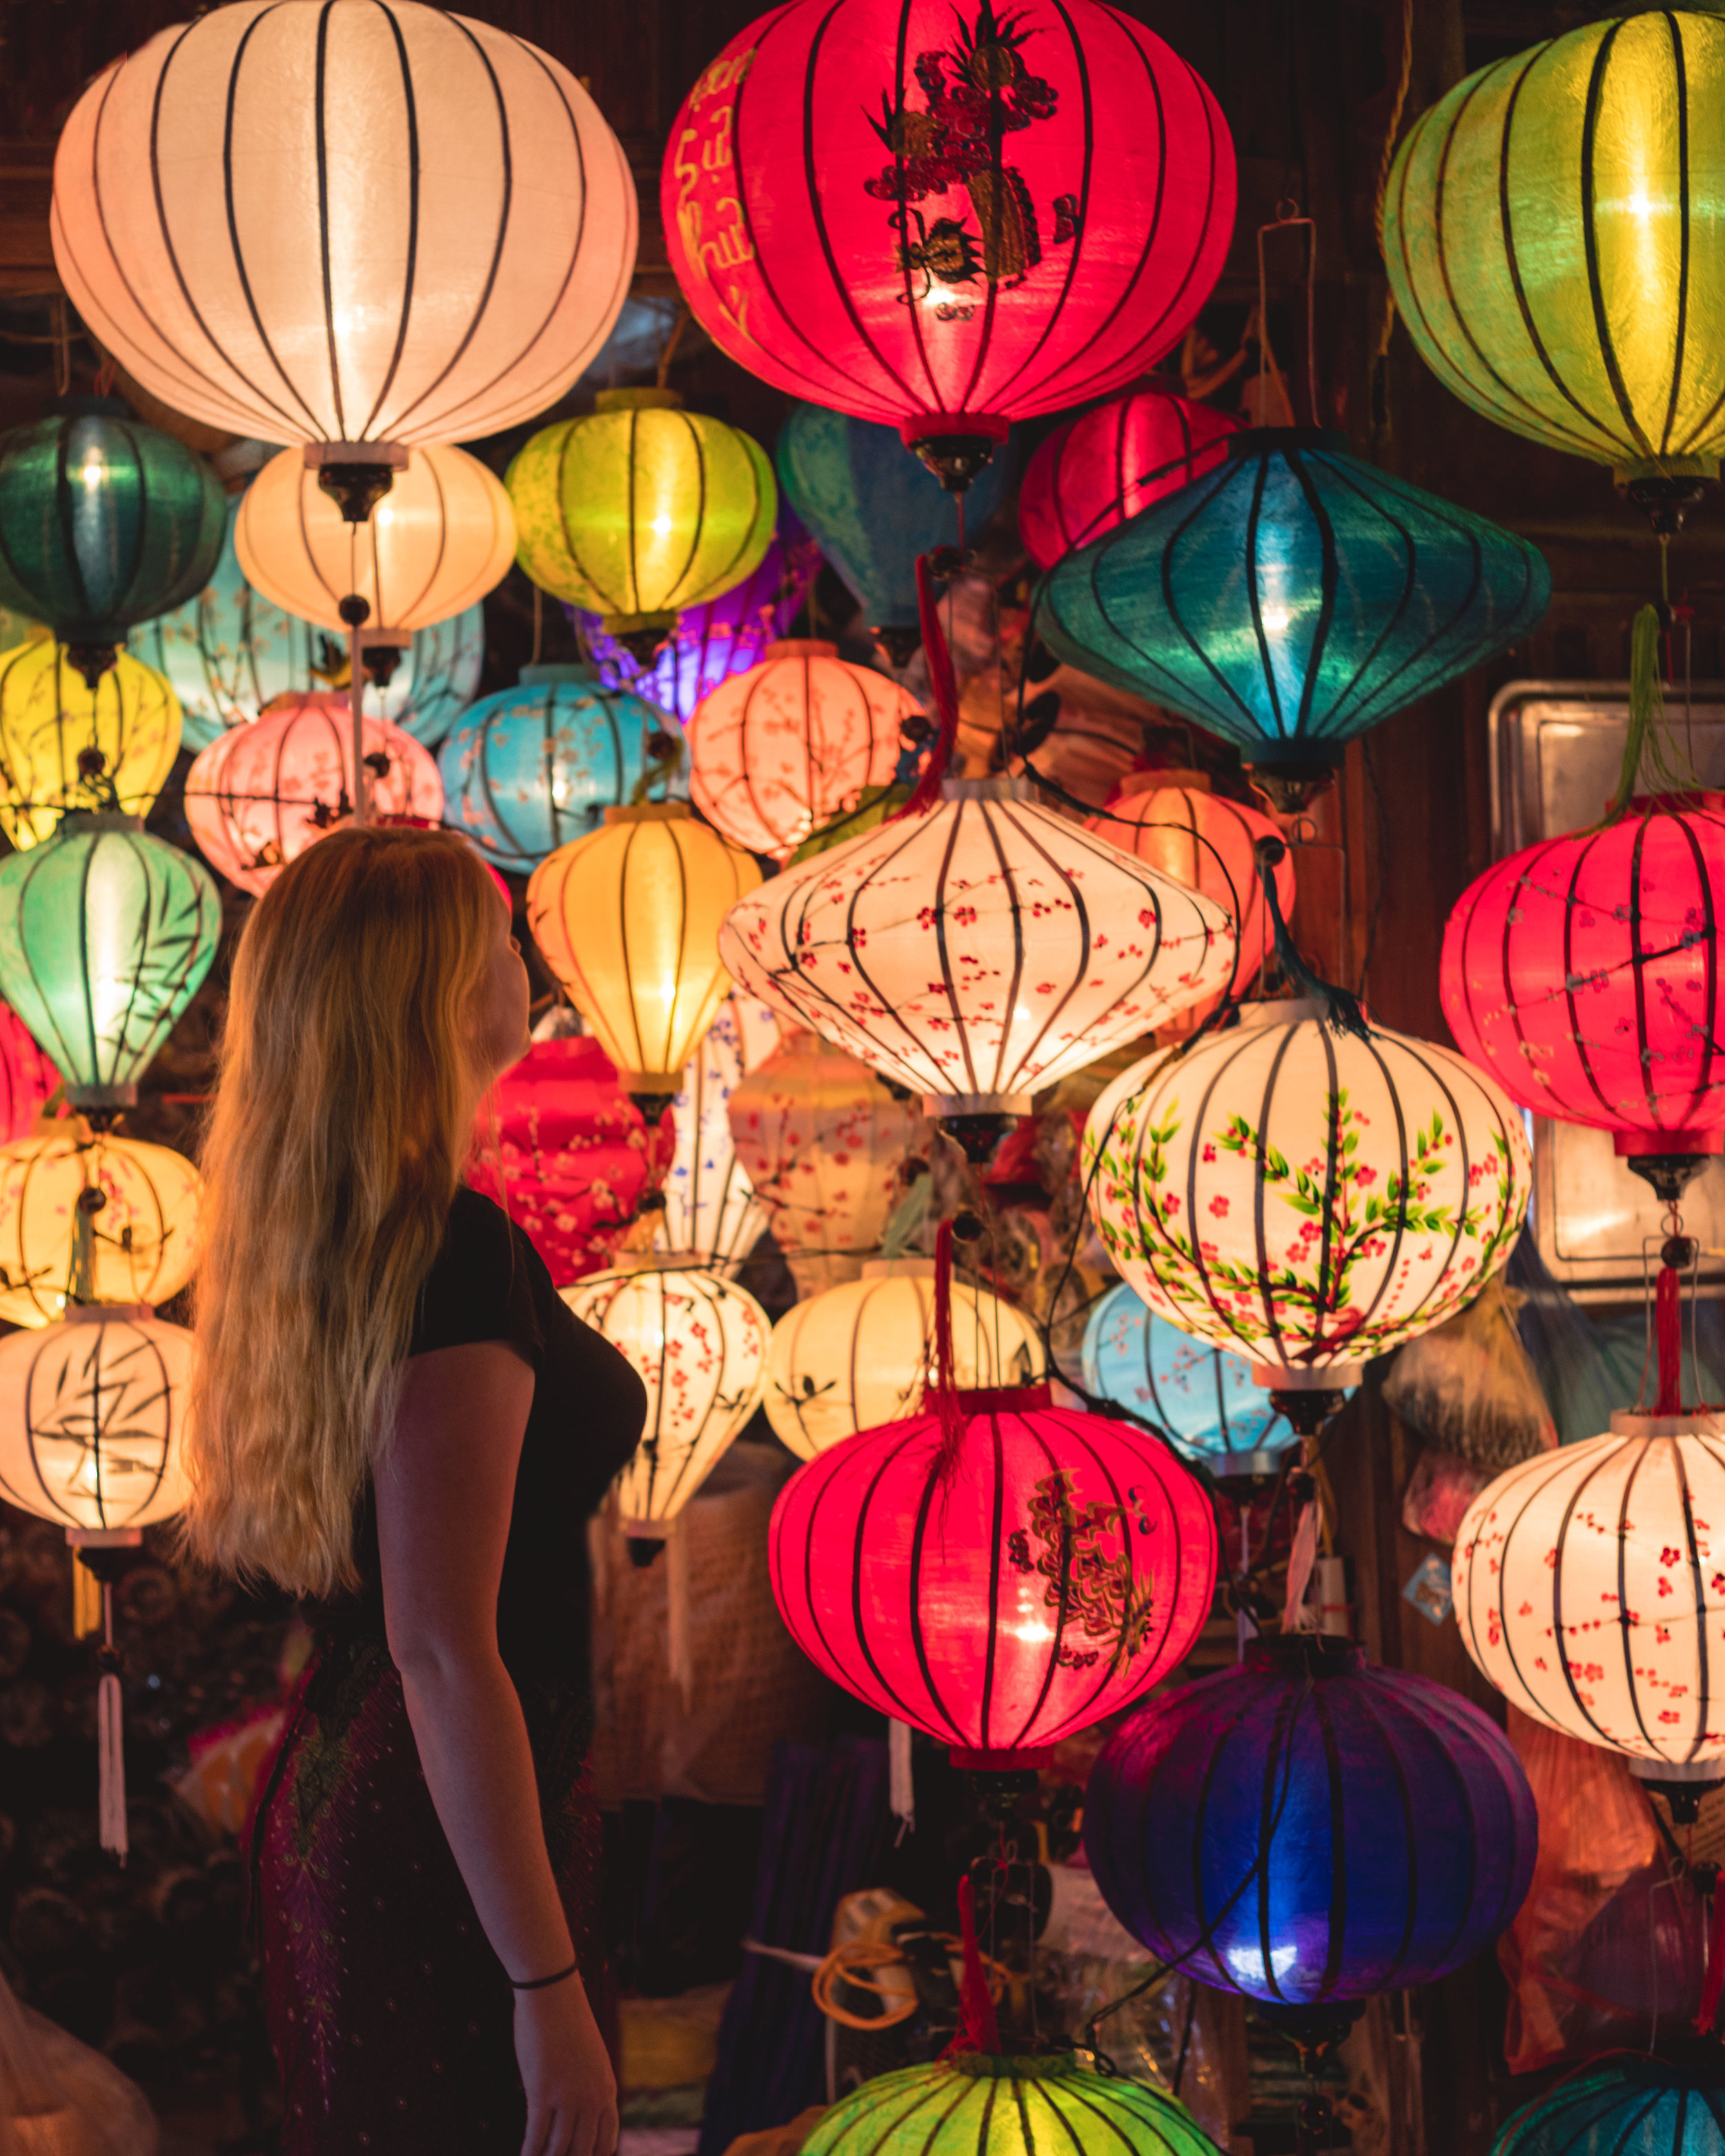 The characteristic lanterns of Hoi An